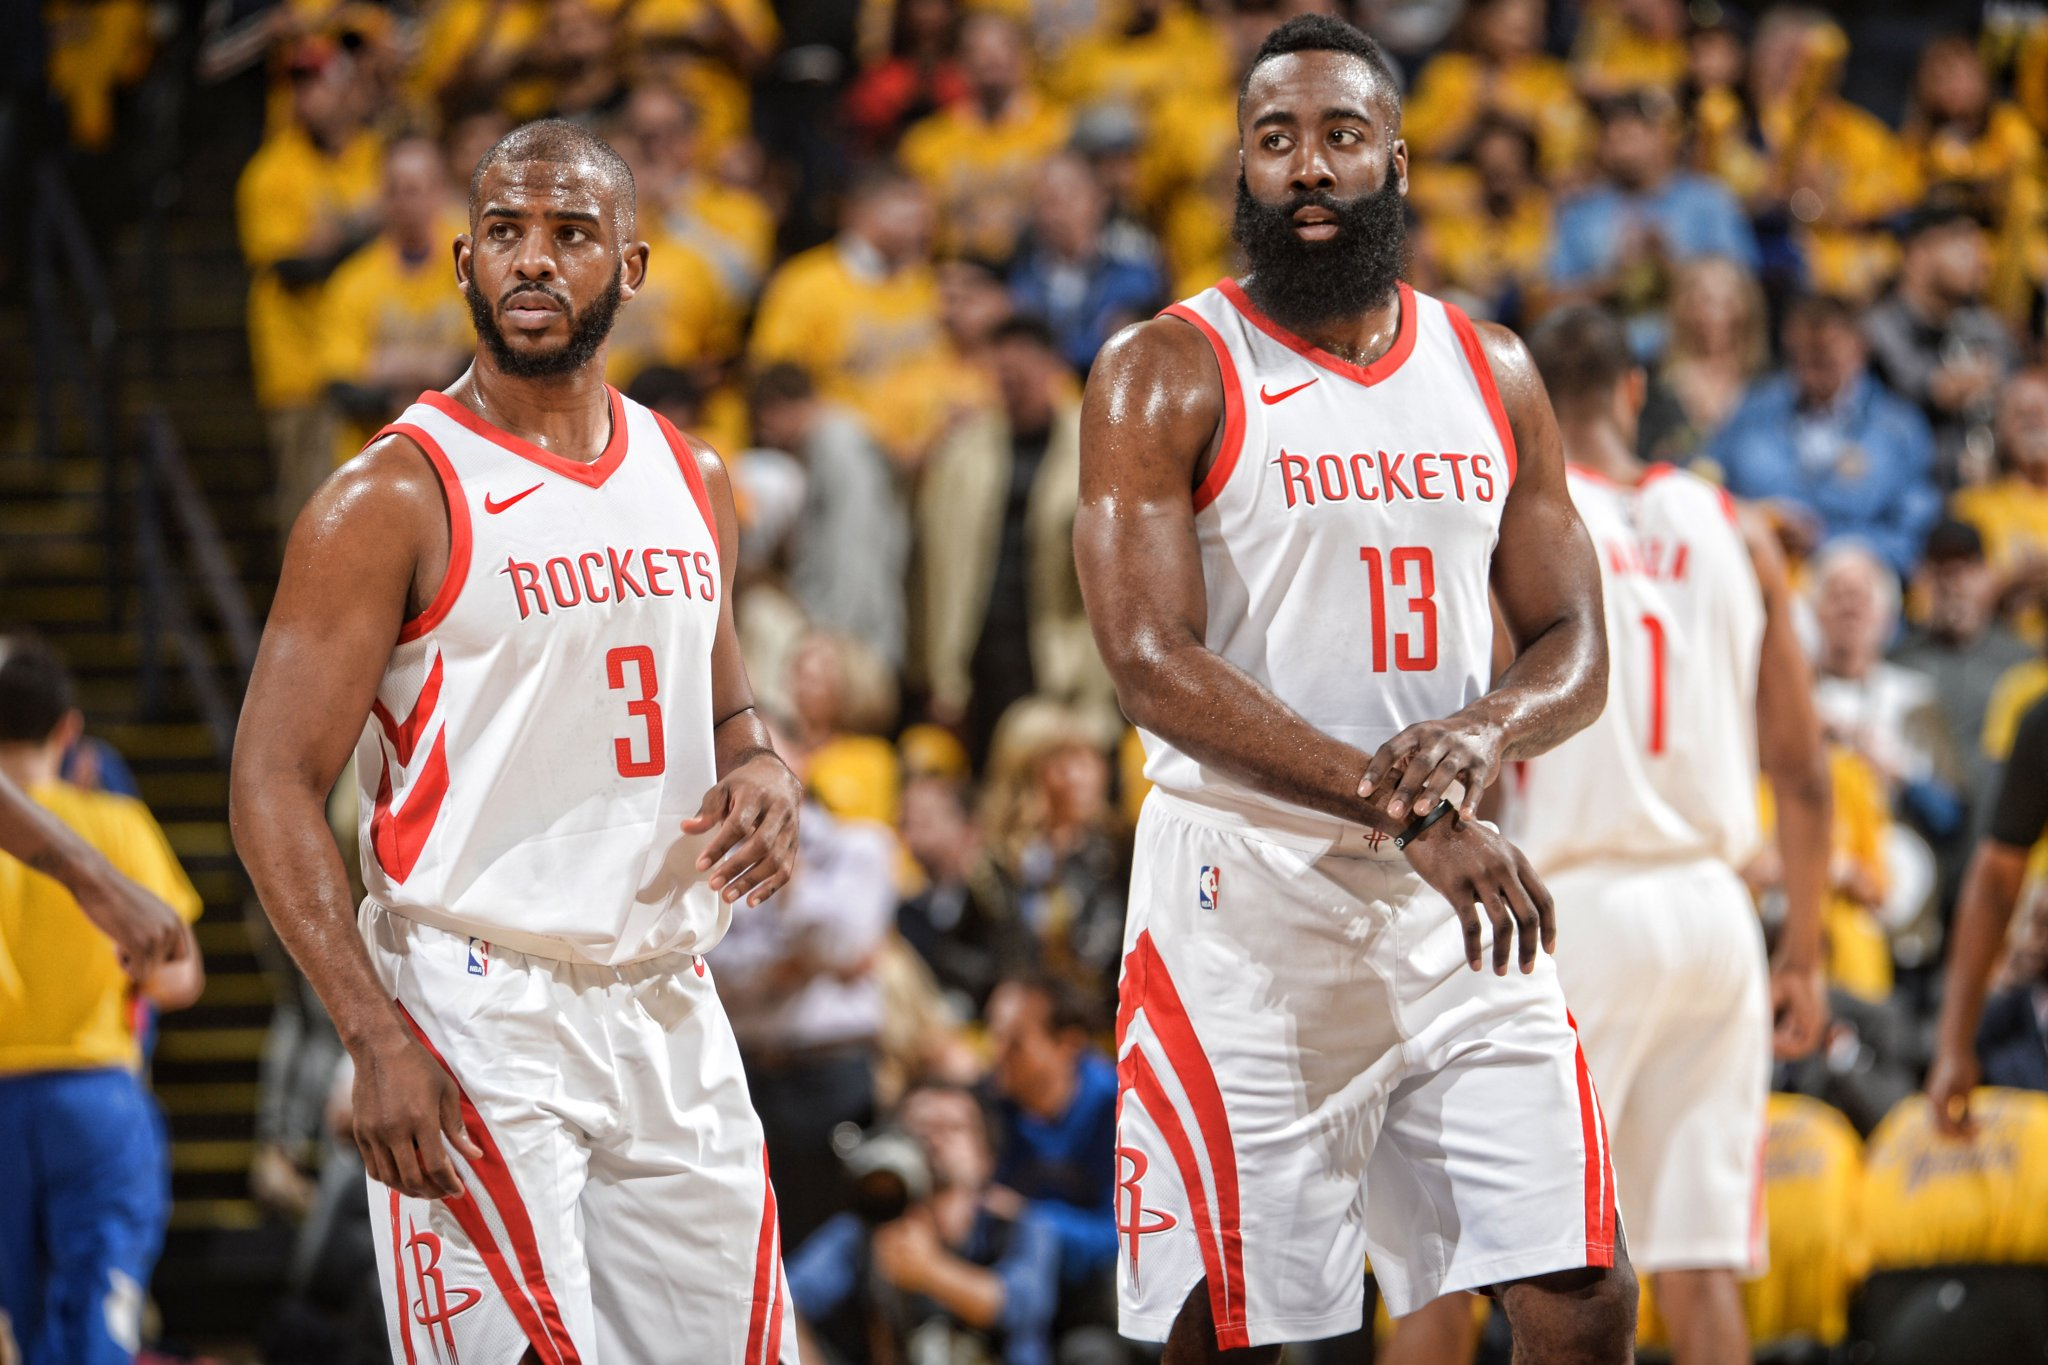 Rockets restore parity with narrow win